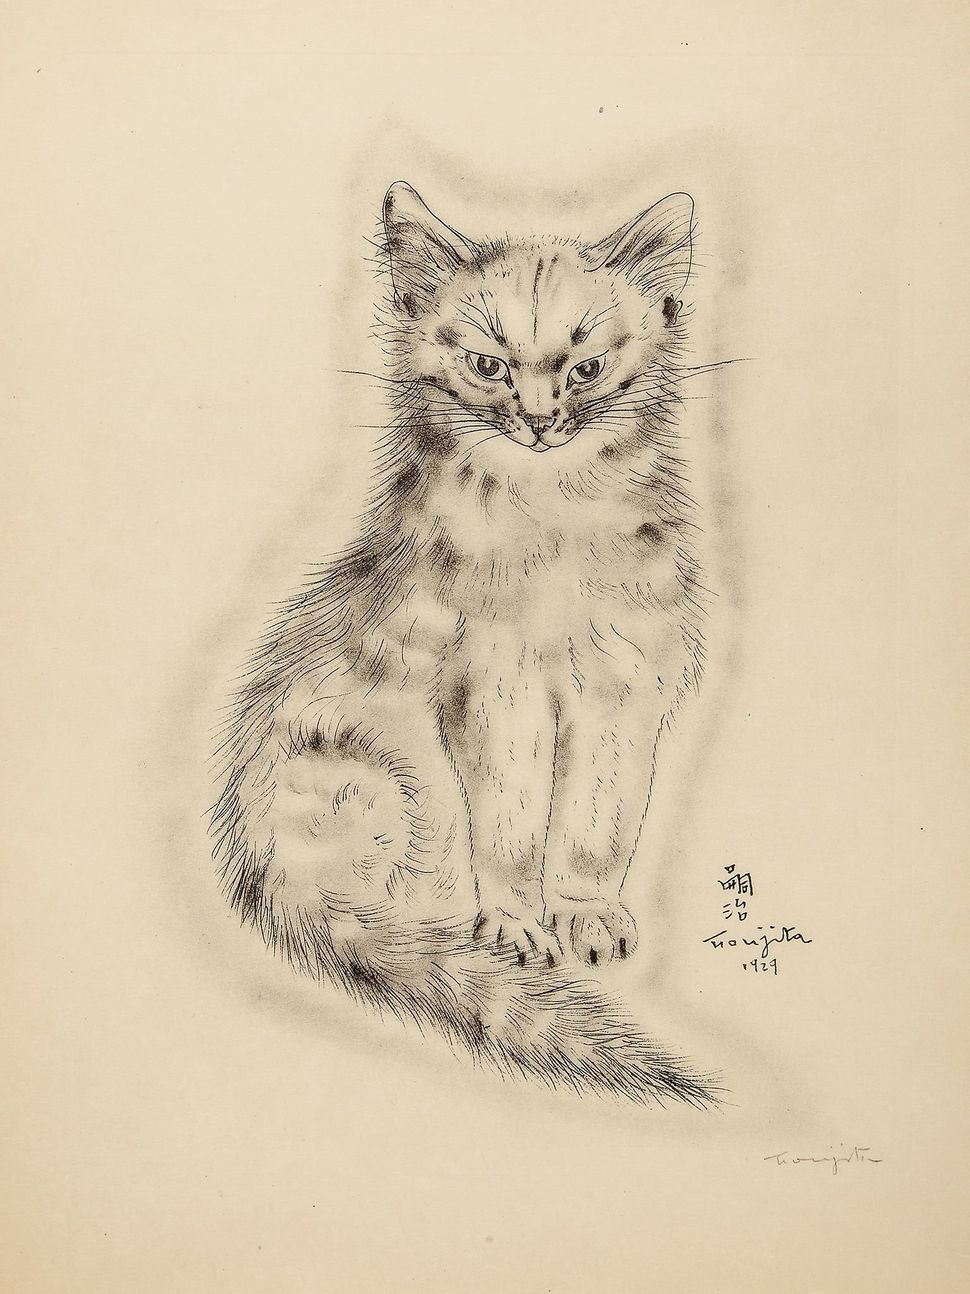 A Giant Trove Of Cat Art Is Headed To Auction On National Cat Day ...